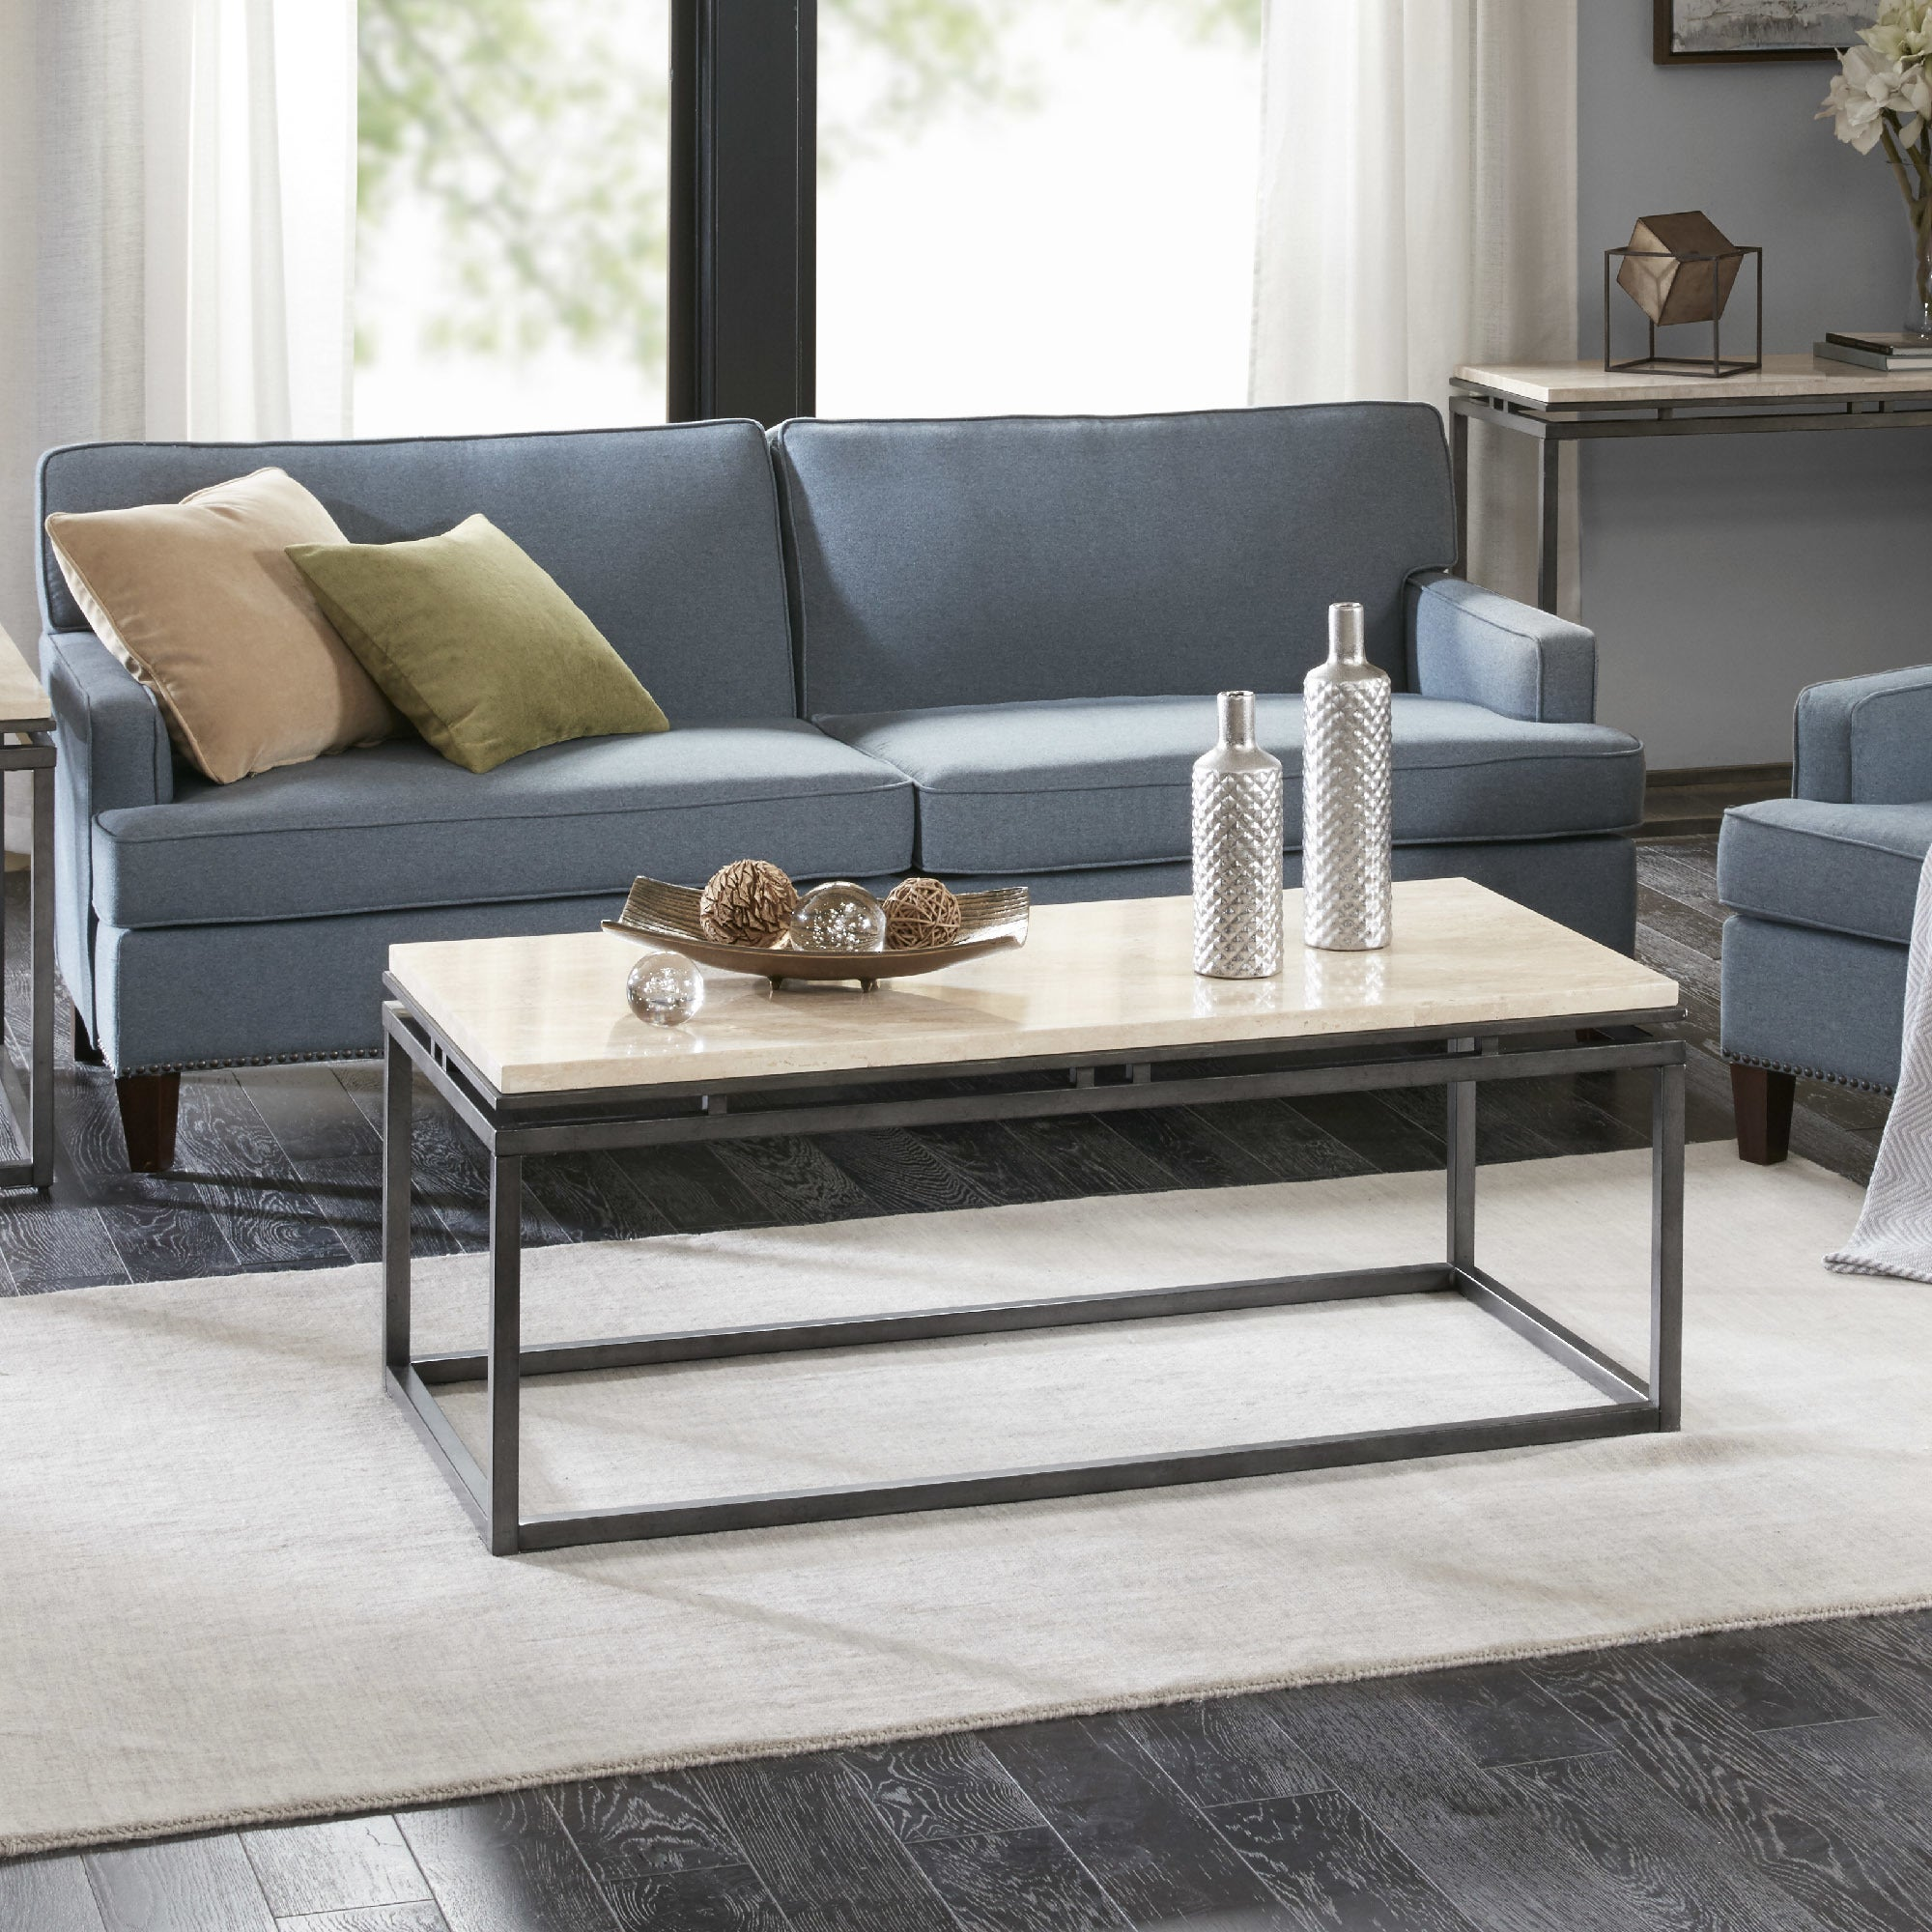 Genial Shop Madison Park Koko Cream Metal And Marble Rectangular Coffee Table    Free Shipping Today   Overstock   18965888